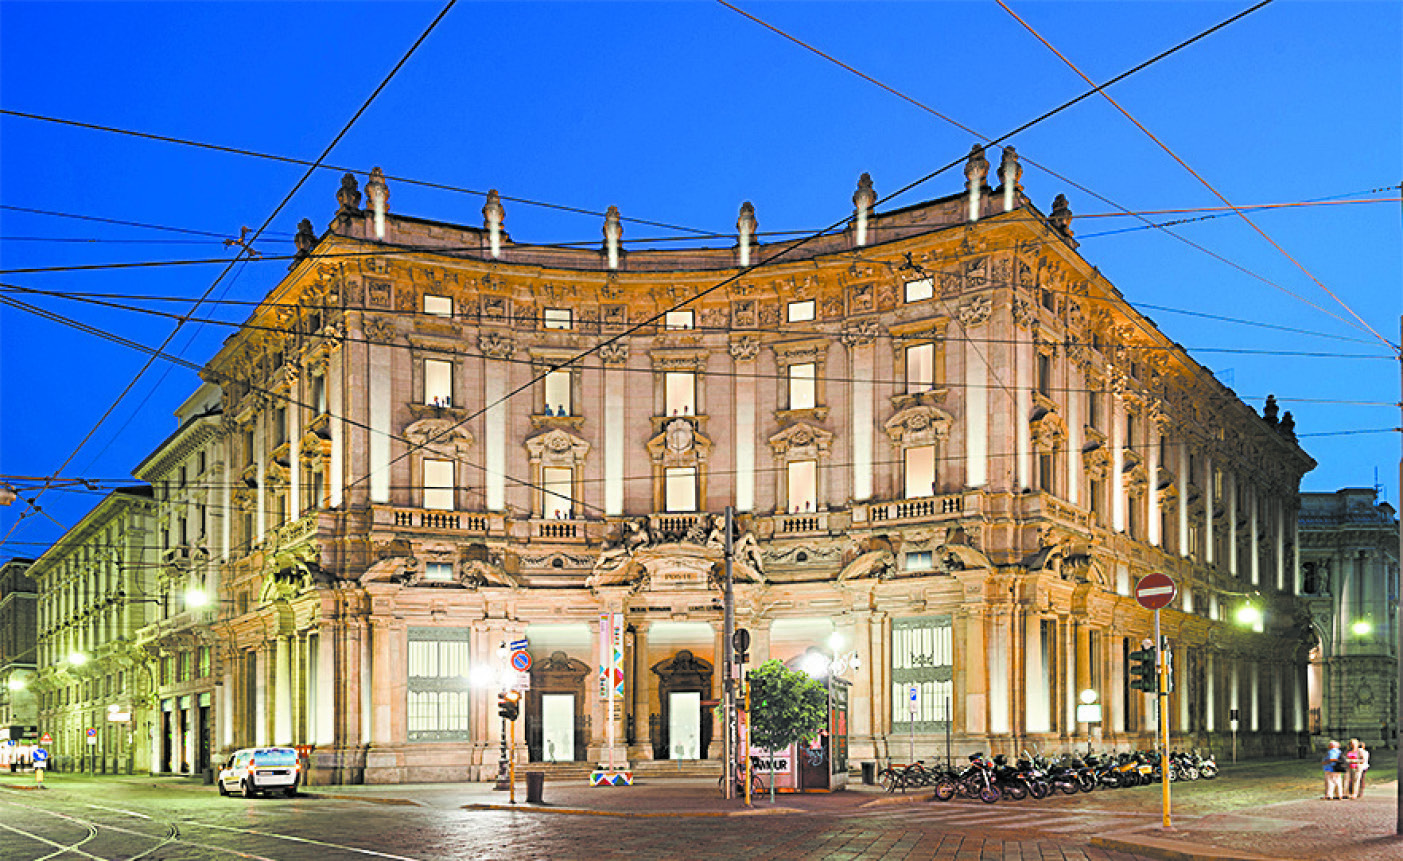 Starbucks is opening a roastery in Milan in the Palazzo Delle Poste, the famous post office building. The 25,500-square-foot retail space will be the first Starbucks roastery in Europe. (COURTESY OF STARBUCKS)